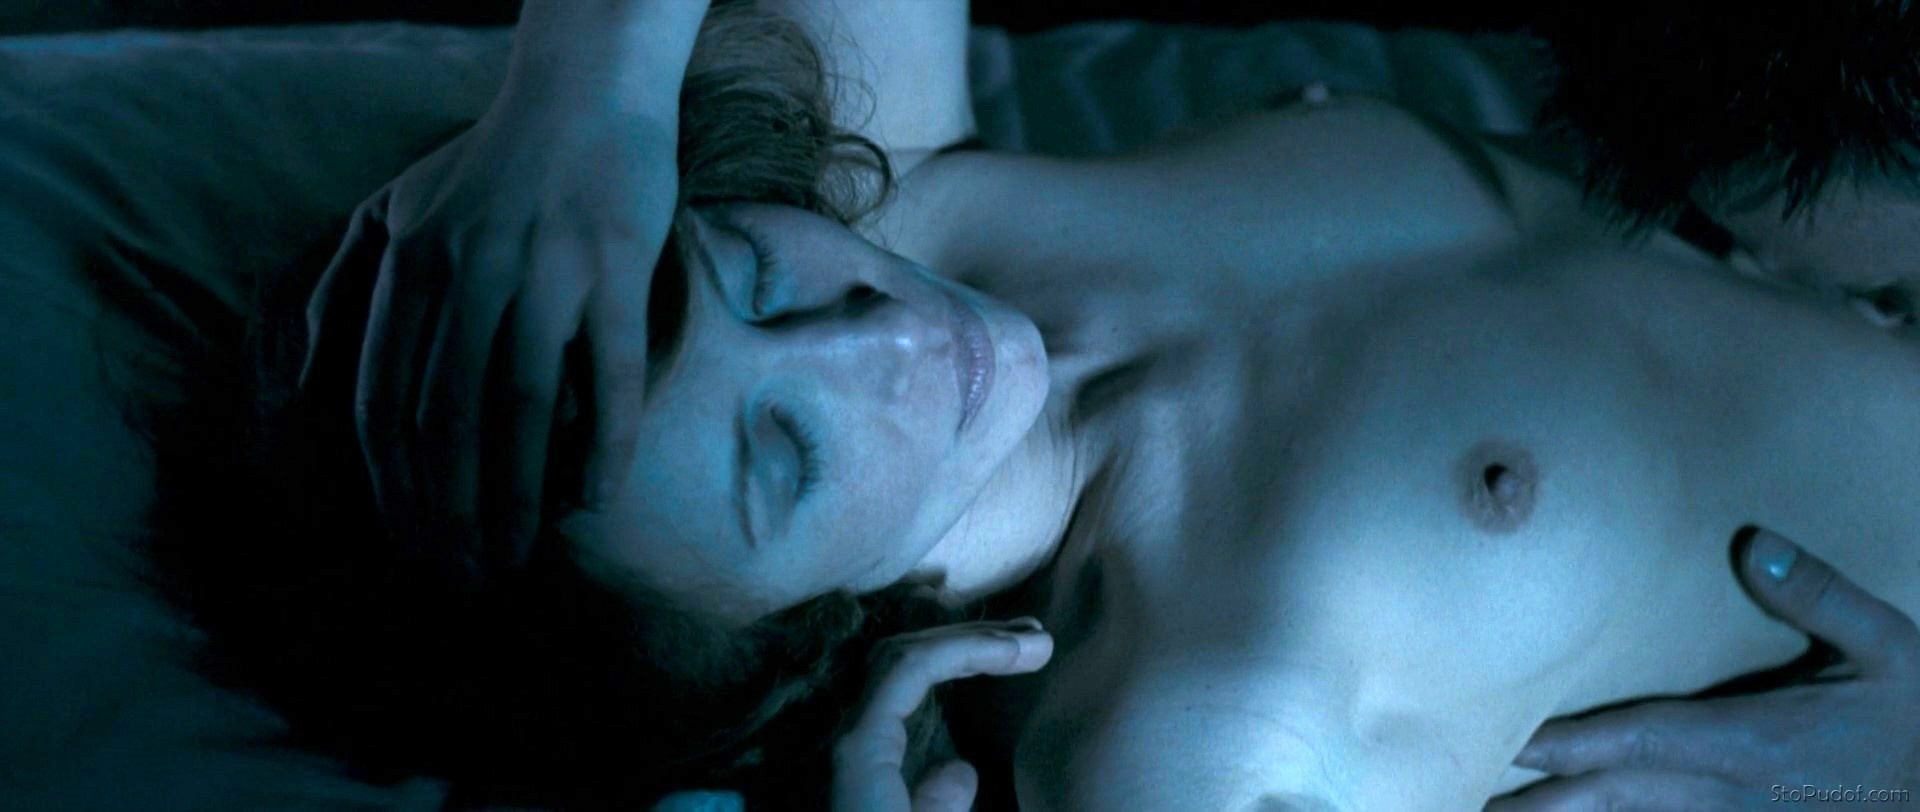 Vera Farmiga nude hacked photos - UkPhotoSafari